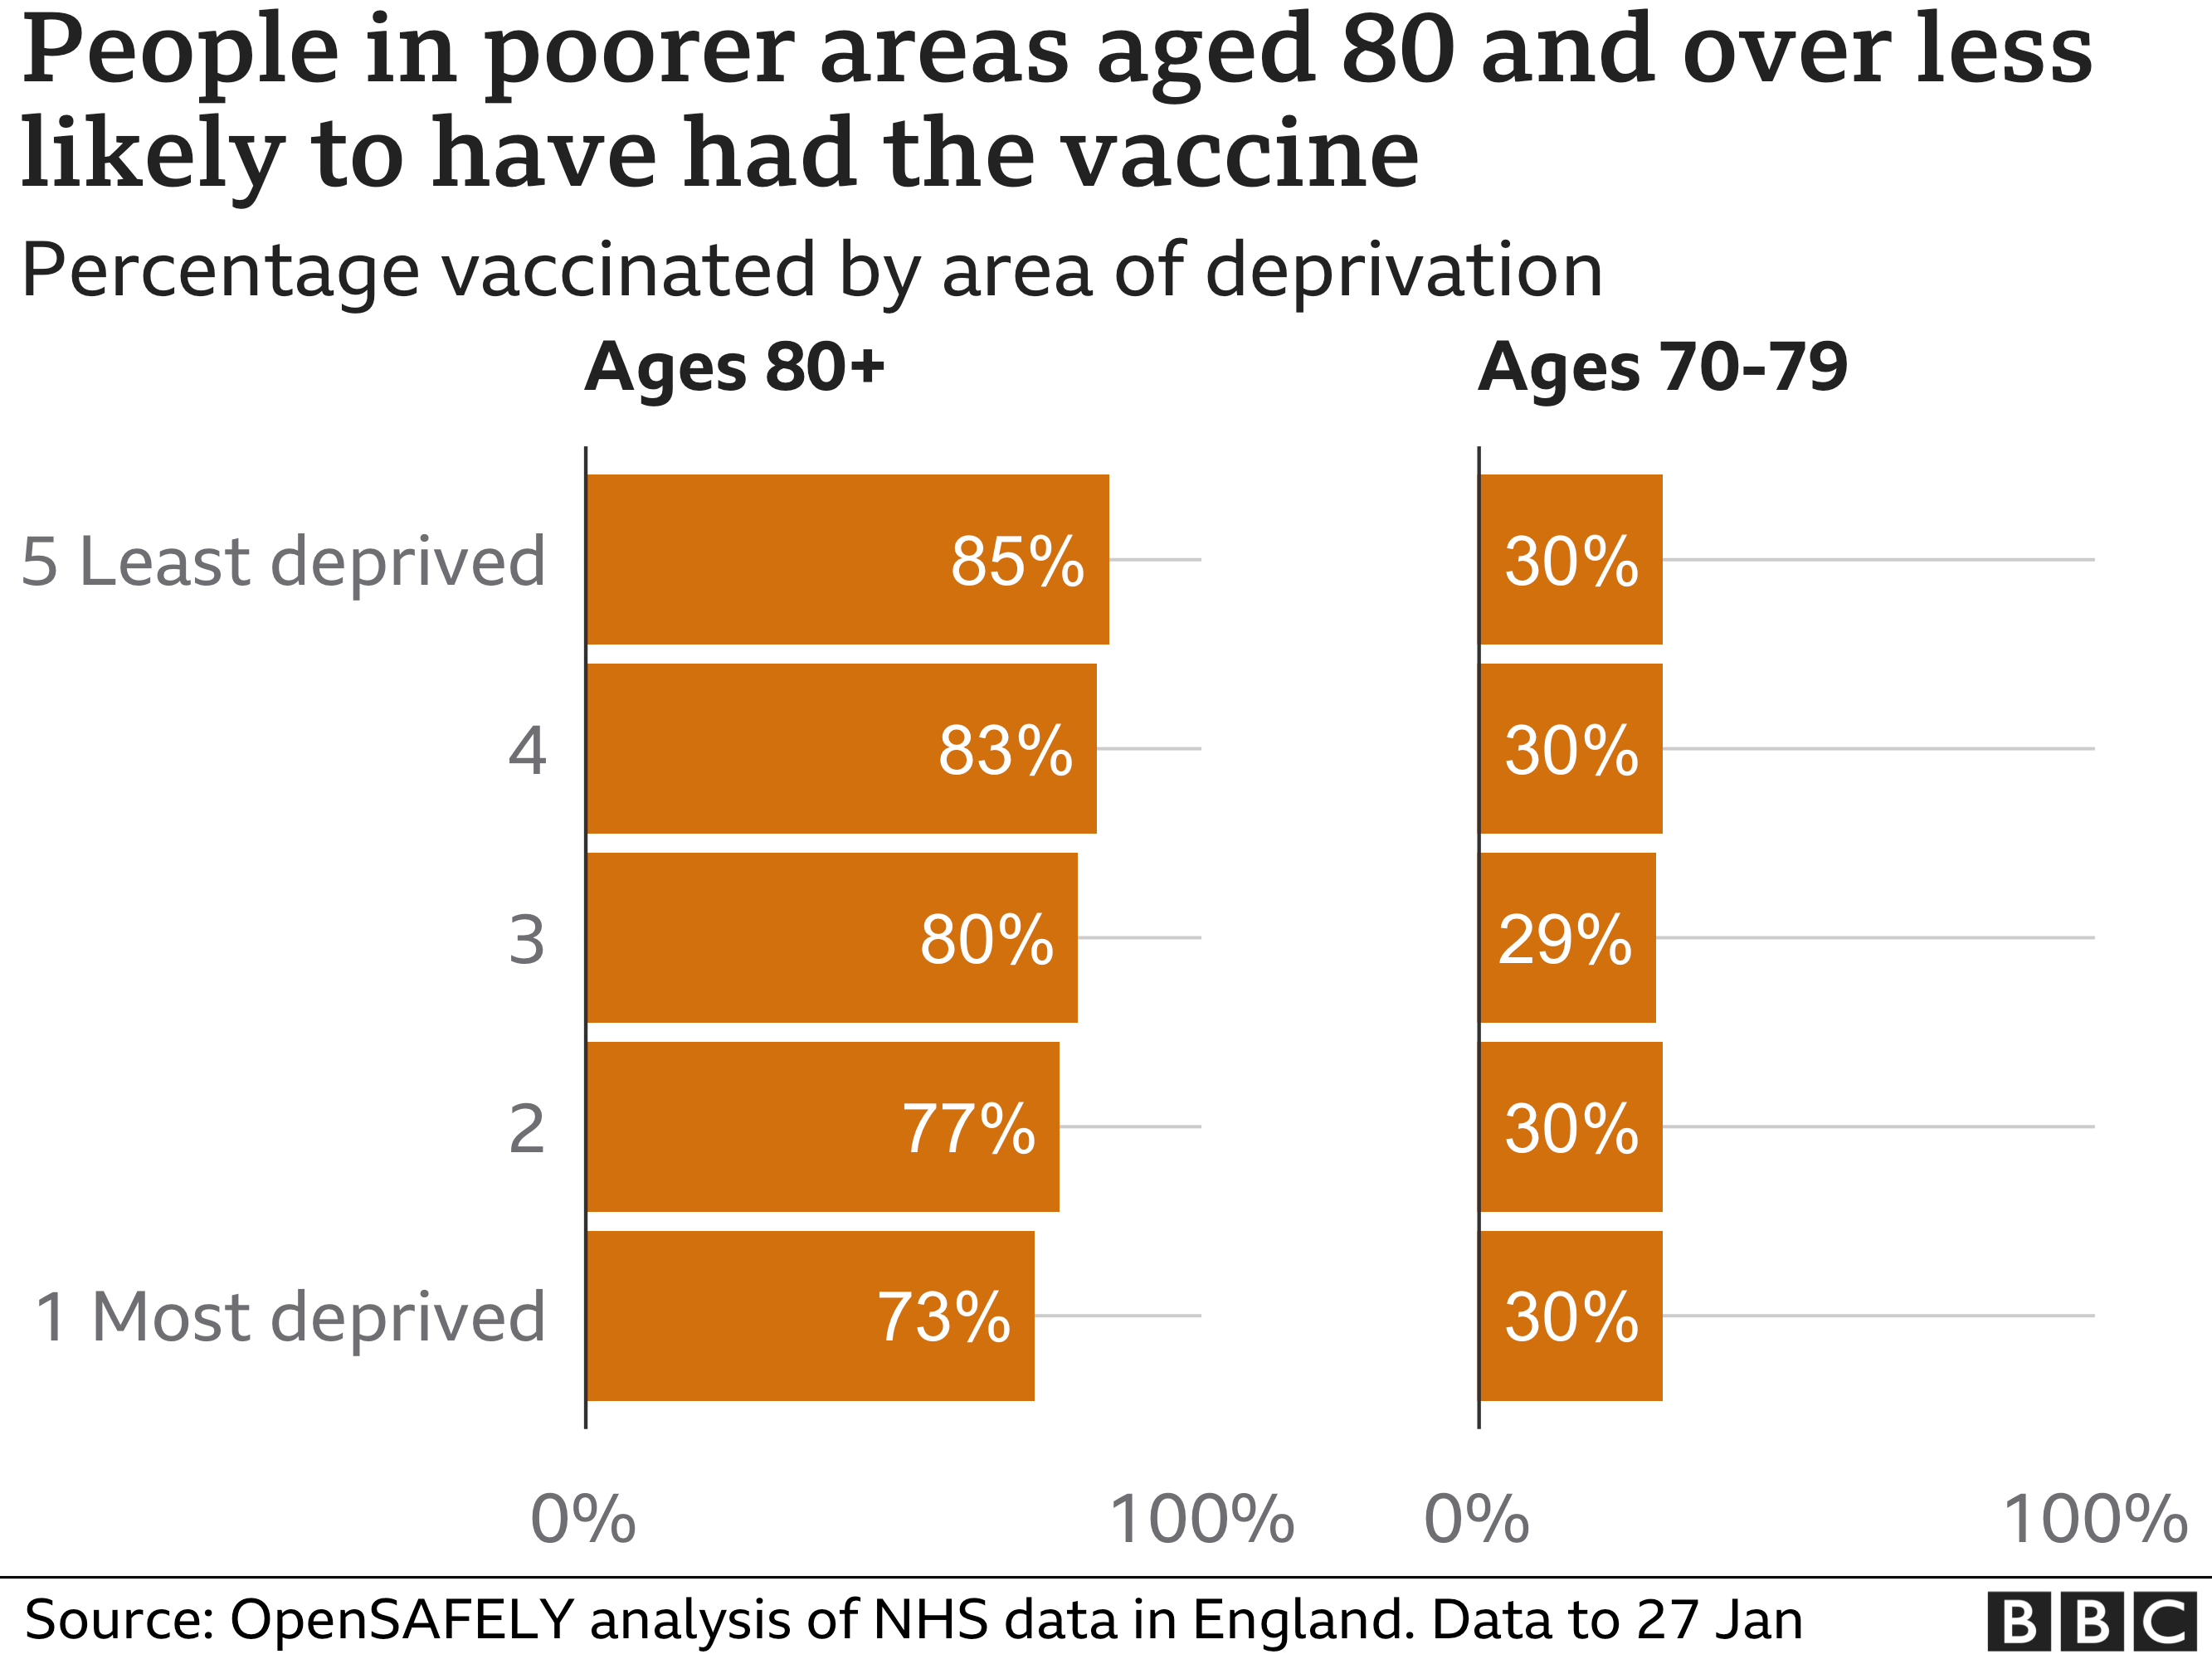 Chart showing those 80 and over from deprived areas are less likely to have received a vaccine